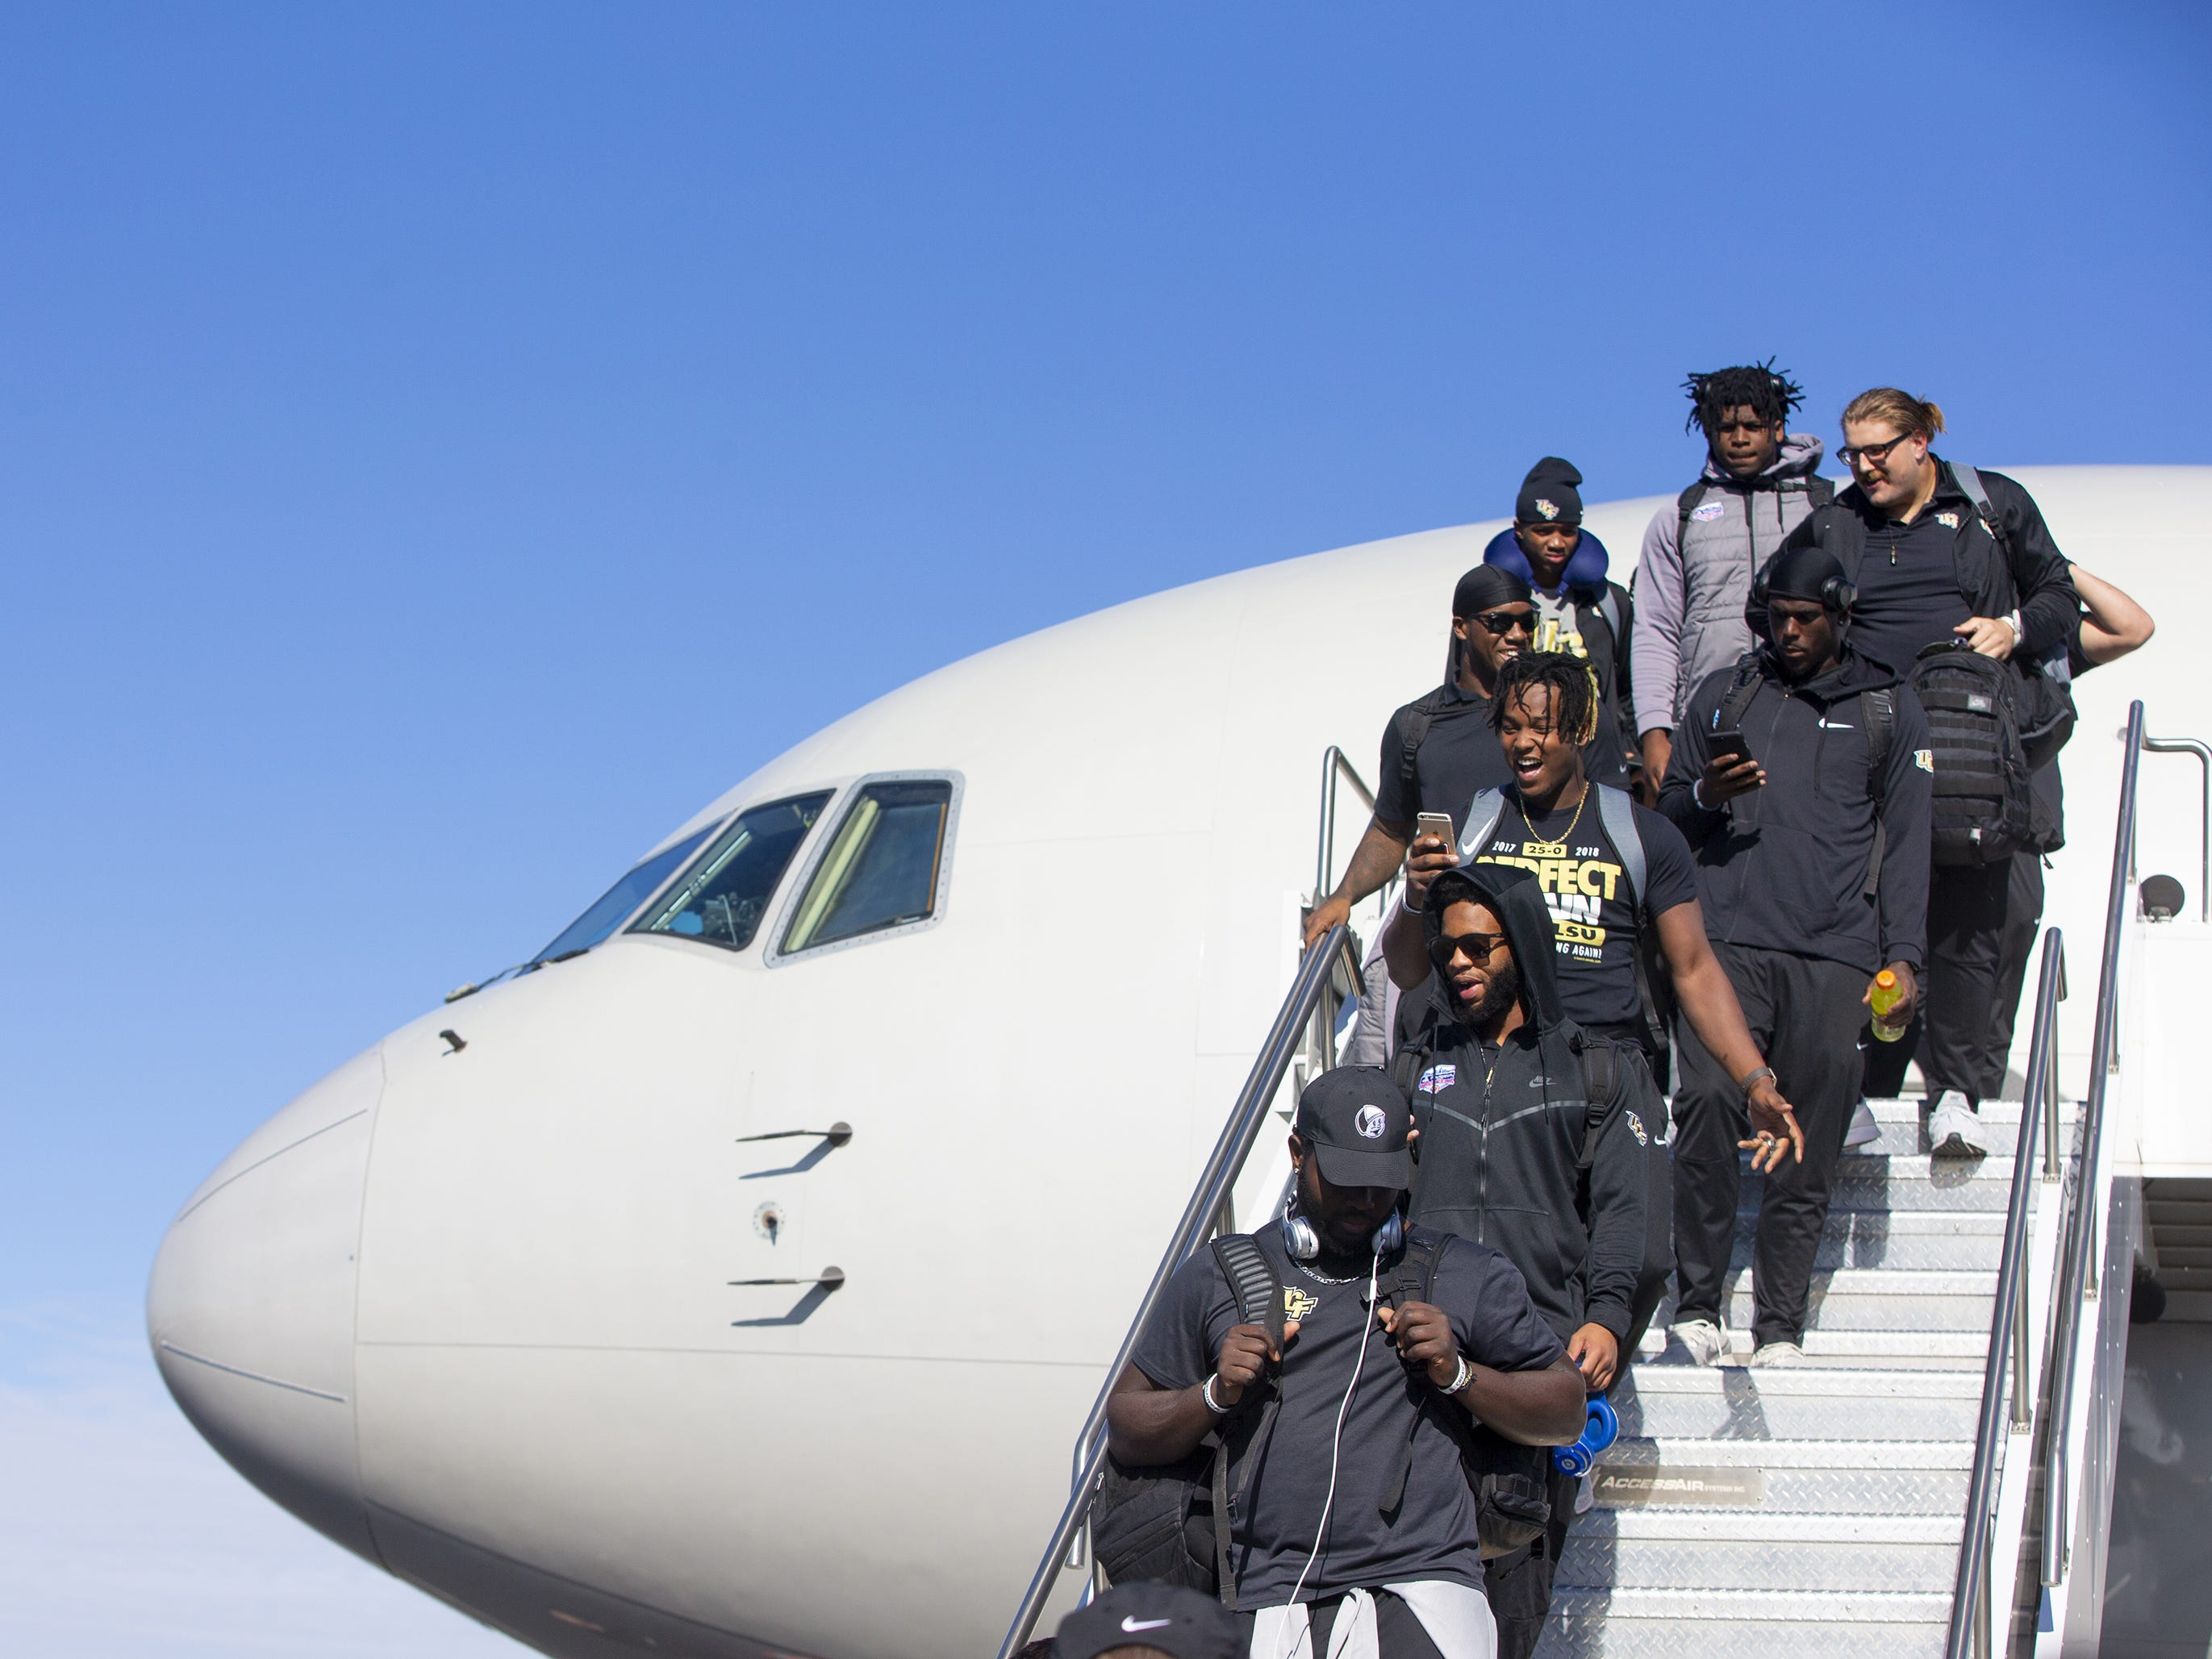 Central Florida football team arrives at Sky Harbor International Airport in Phoenix on December 27. Central Florida will face LSU in the Fiesta Bowl on New Year's Day.